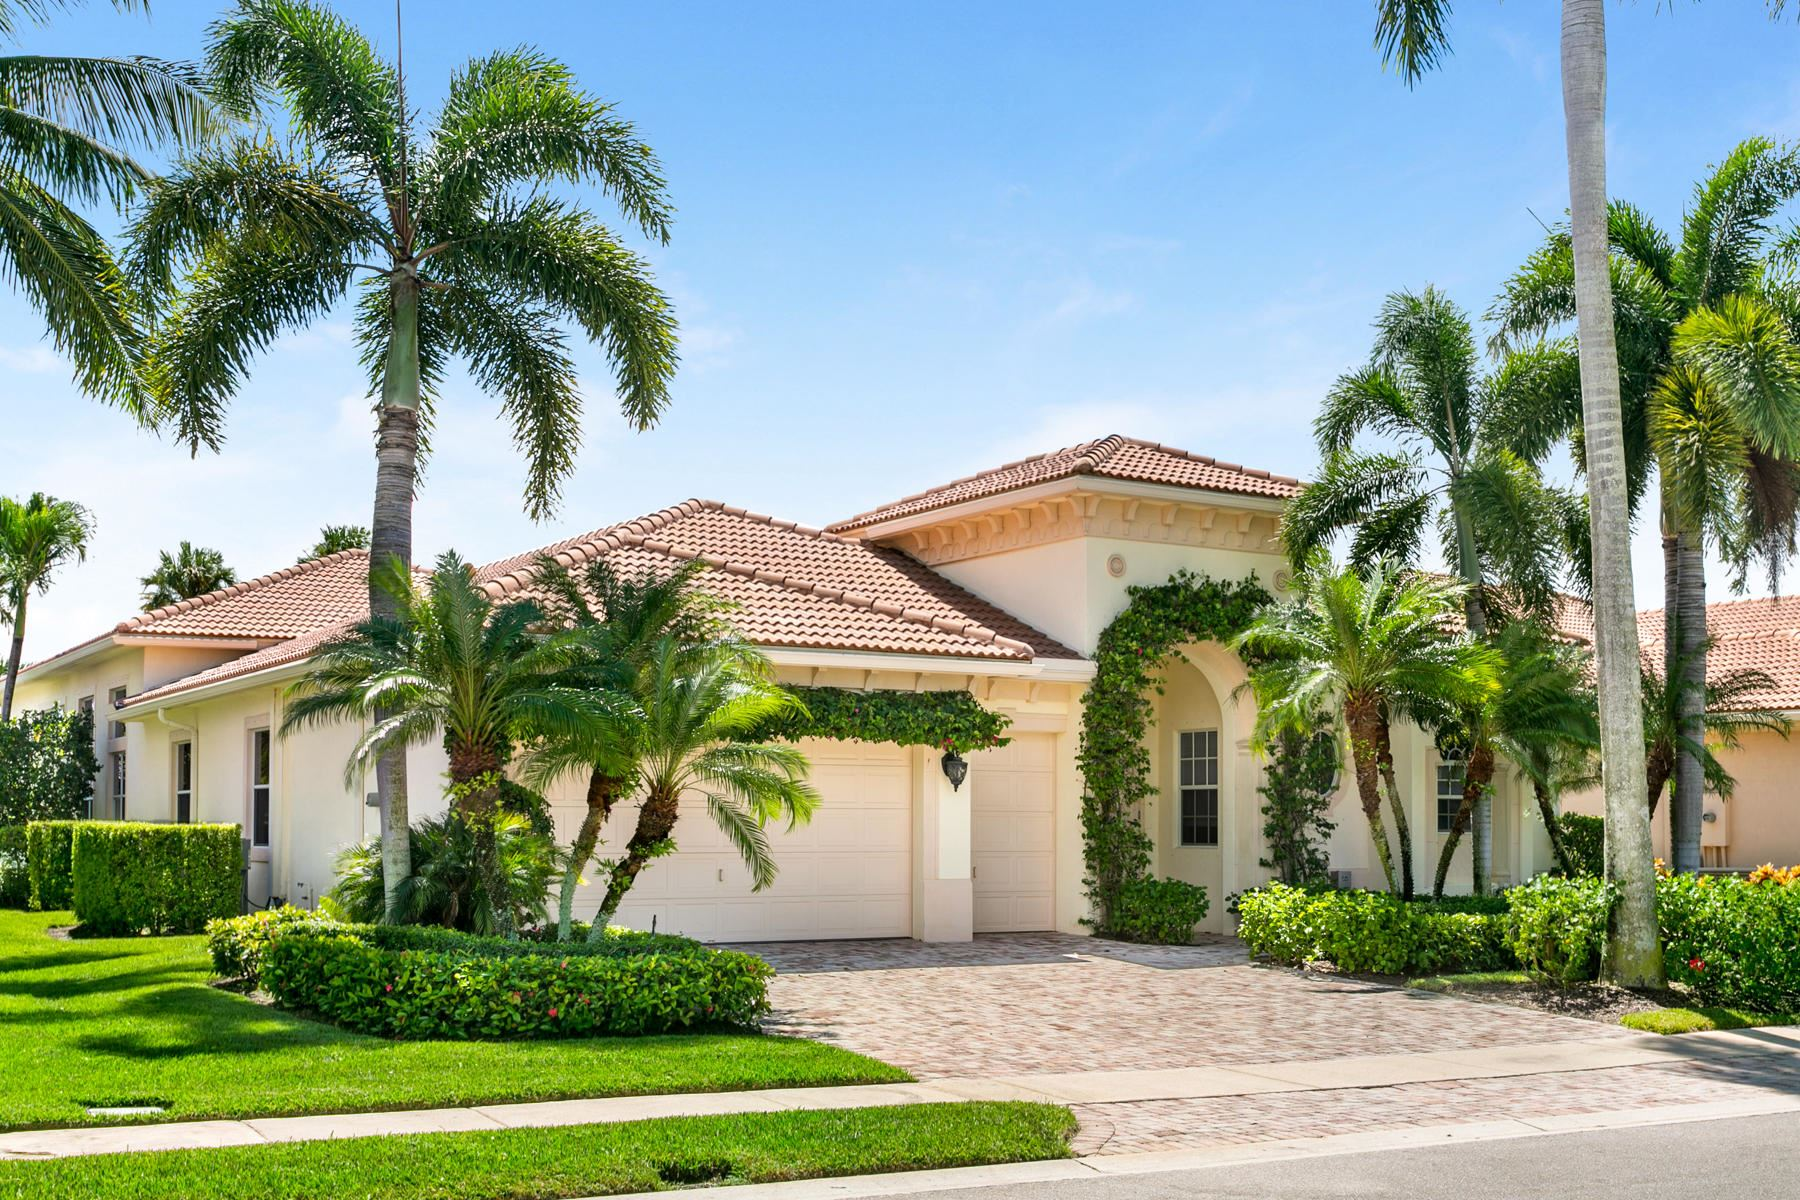 Photo of 530 Les Jardin Drive, Palm Beach Gardens, FL 33410 (MLS # RX-10687748)